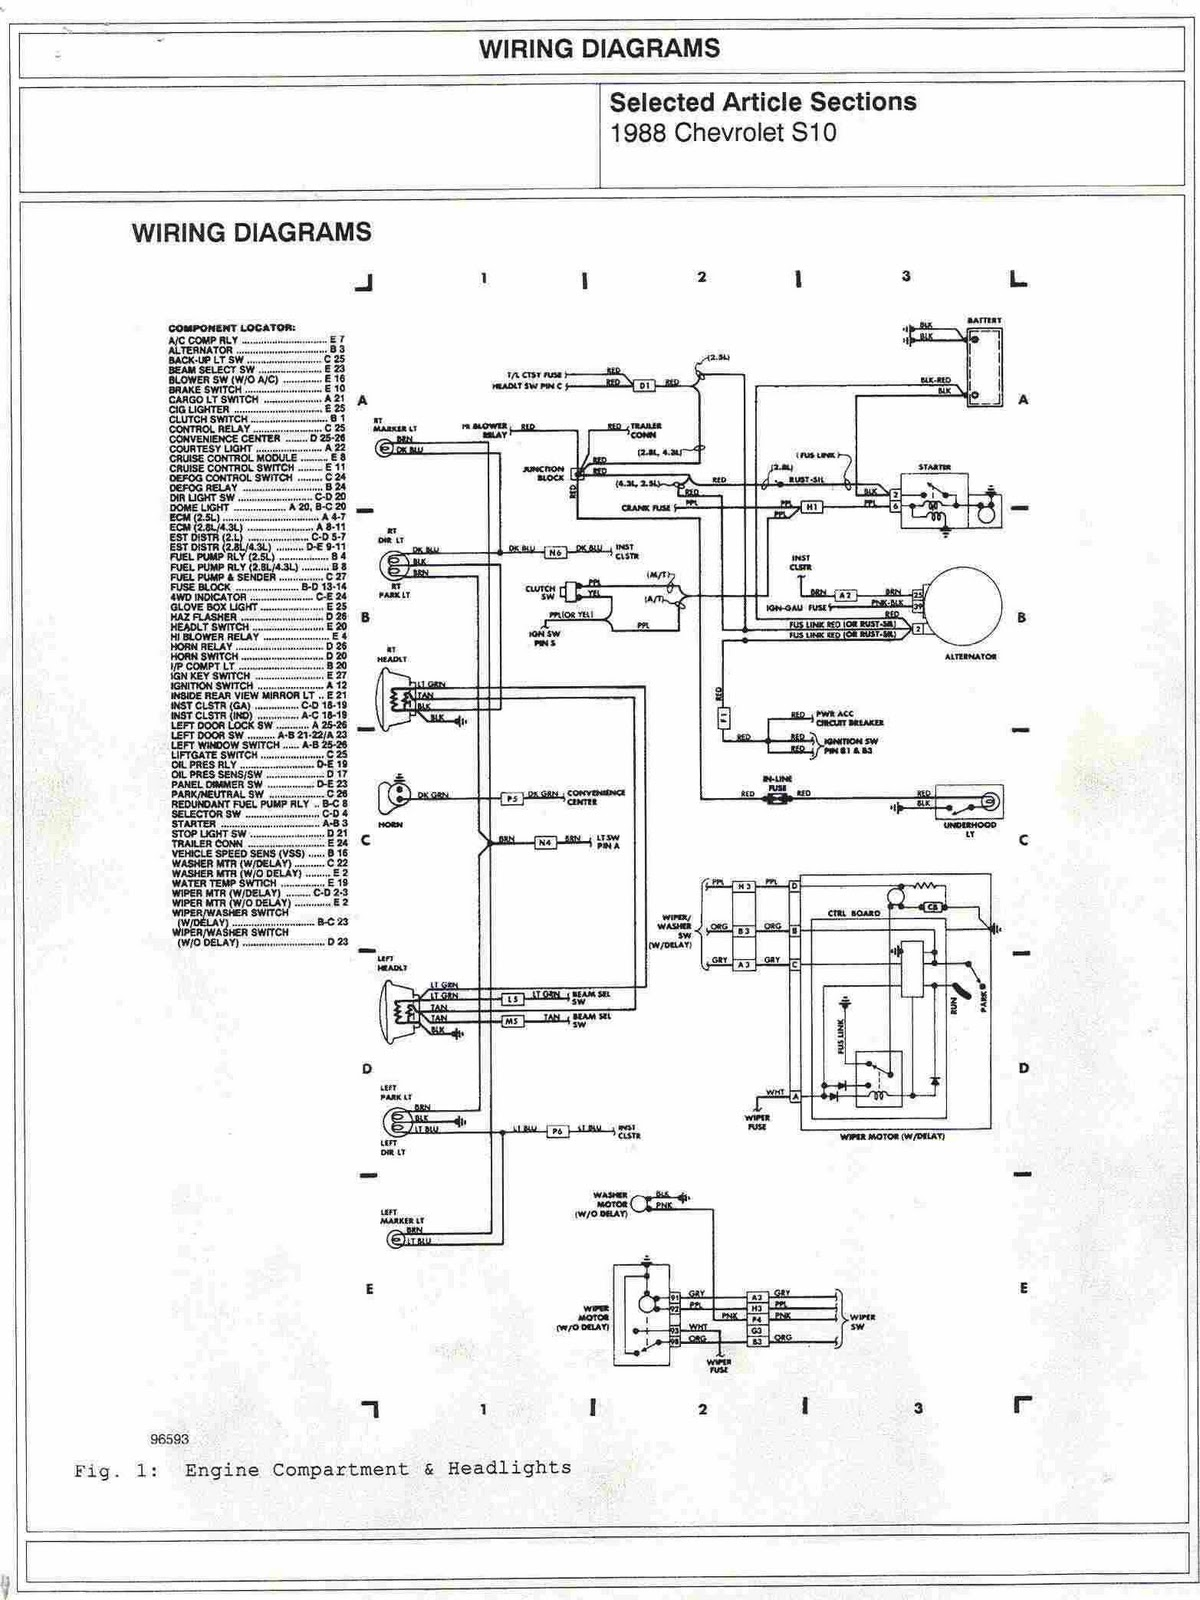 wiring diagram 1988 chevy s10 fuel pump the wiring diagram 97 s10 wiring diagram nodasystech wiring diagram · 2000 chevy tahoe fuel pump